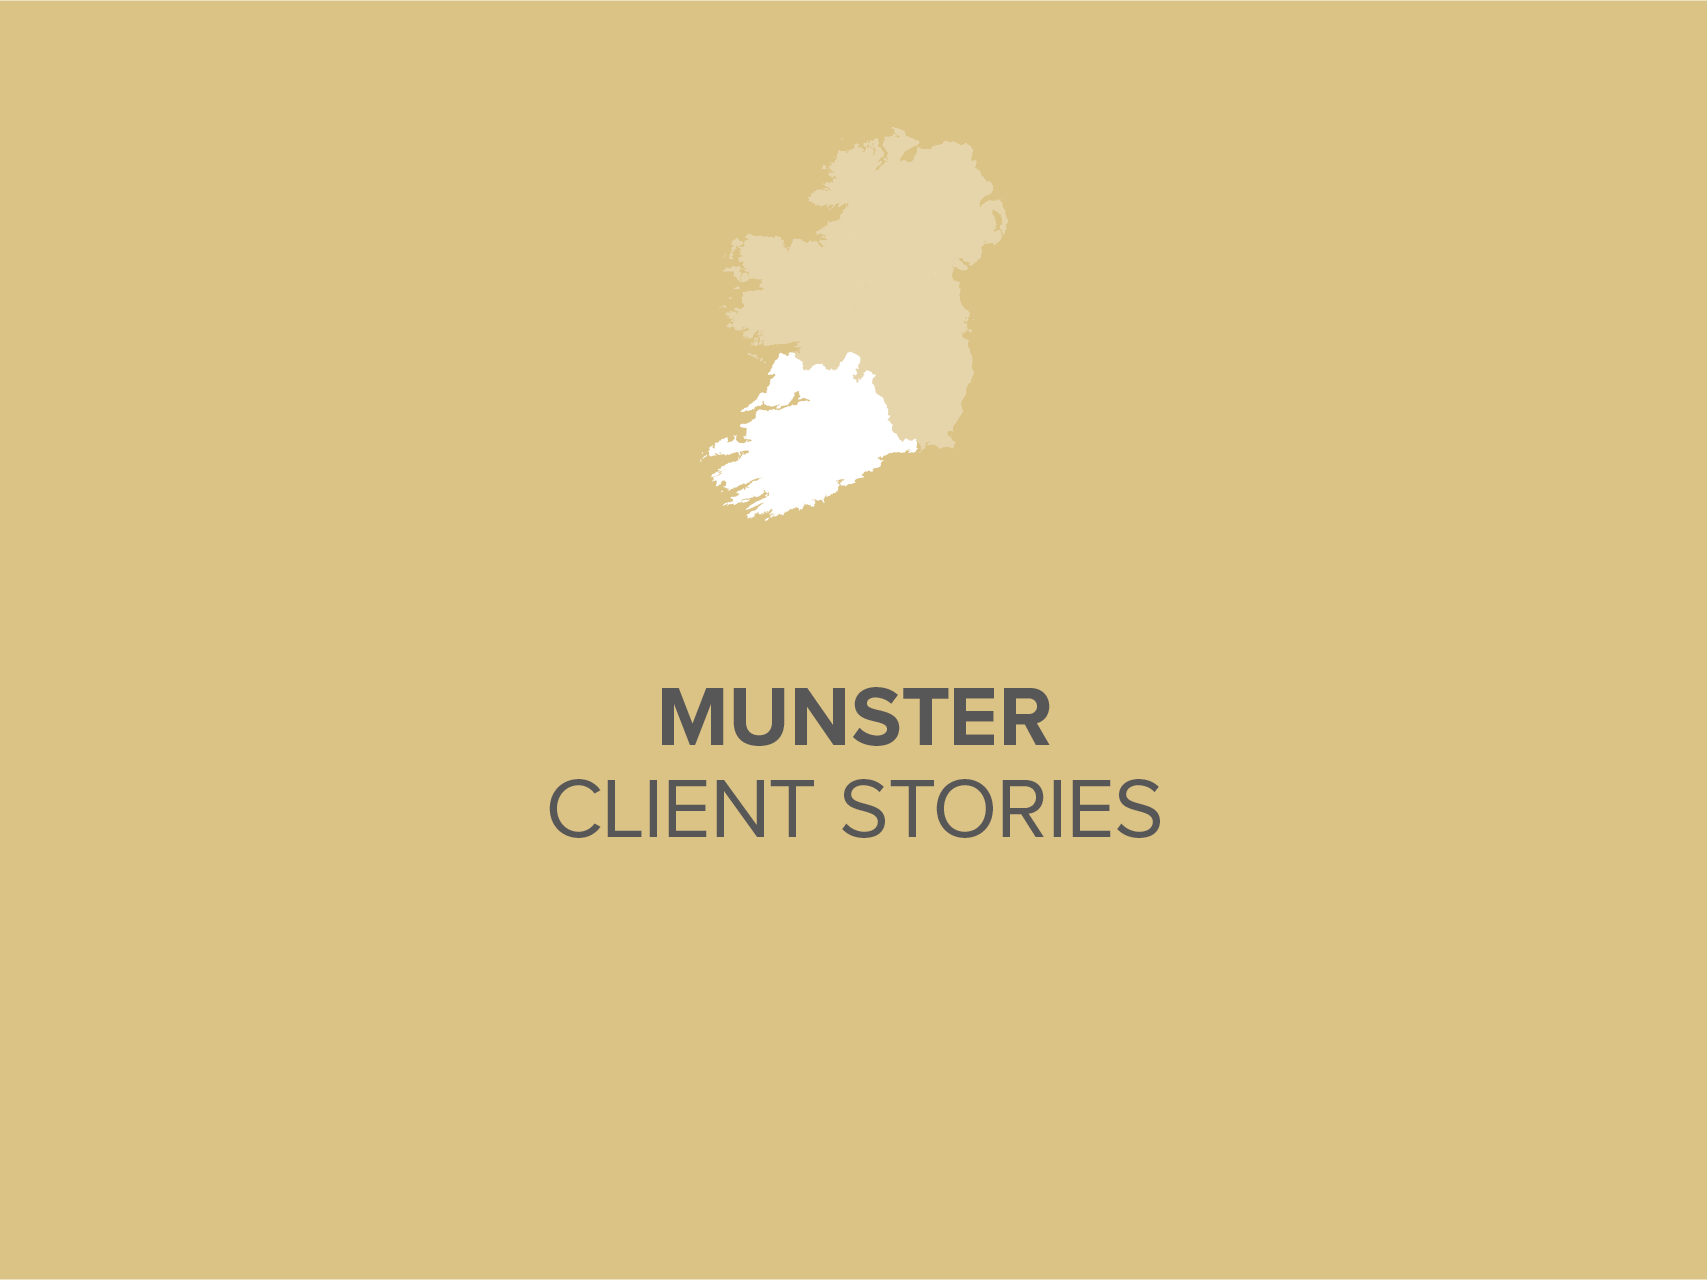 Munster Client Stories